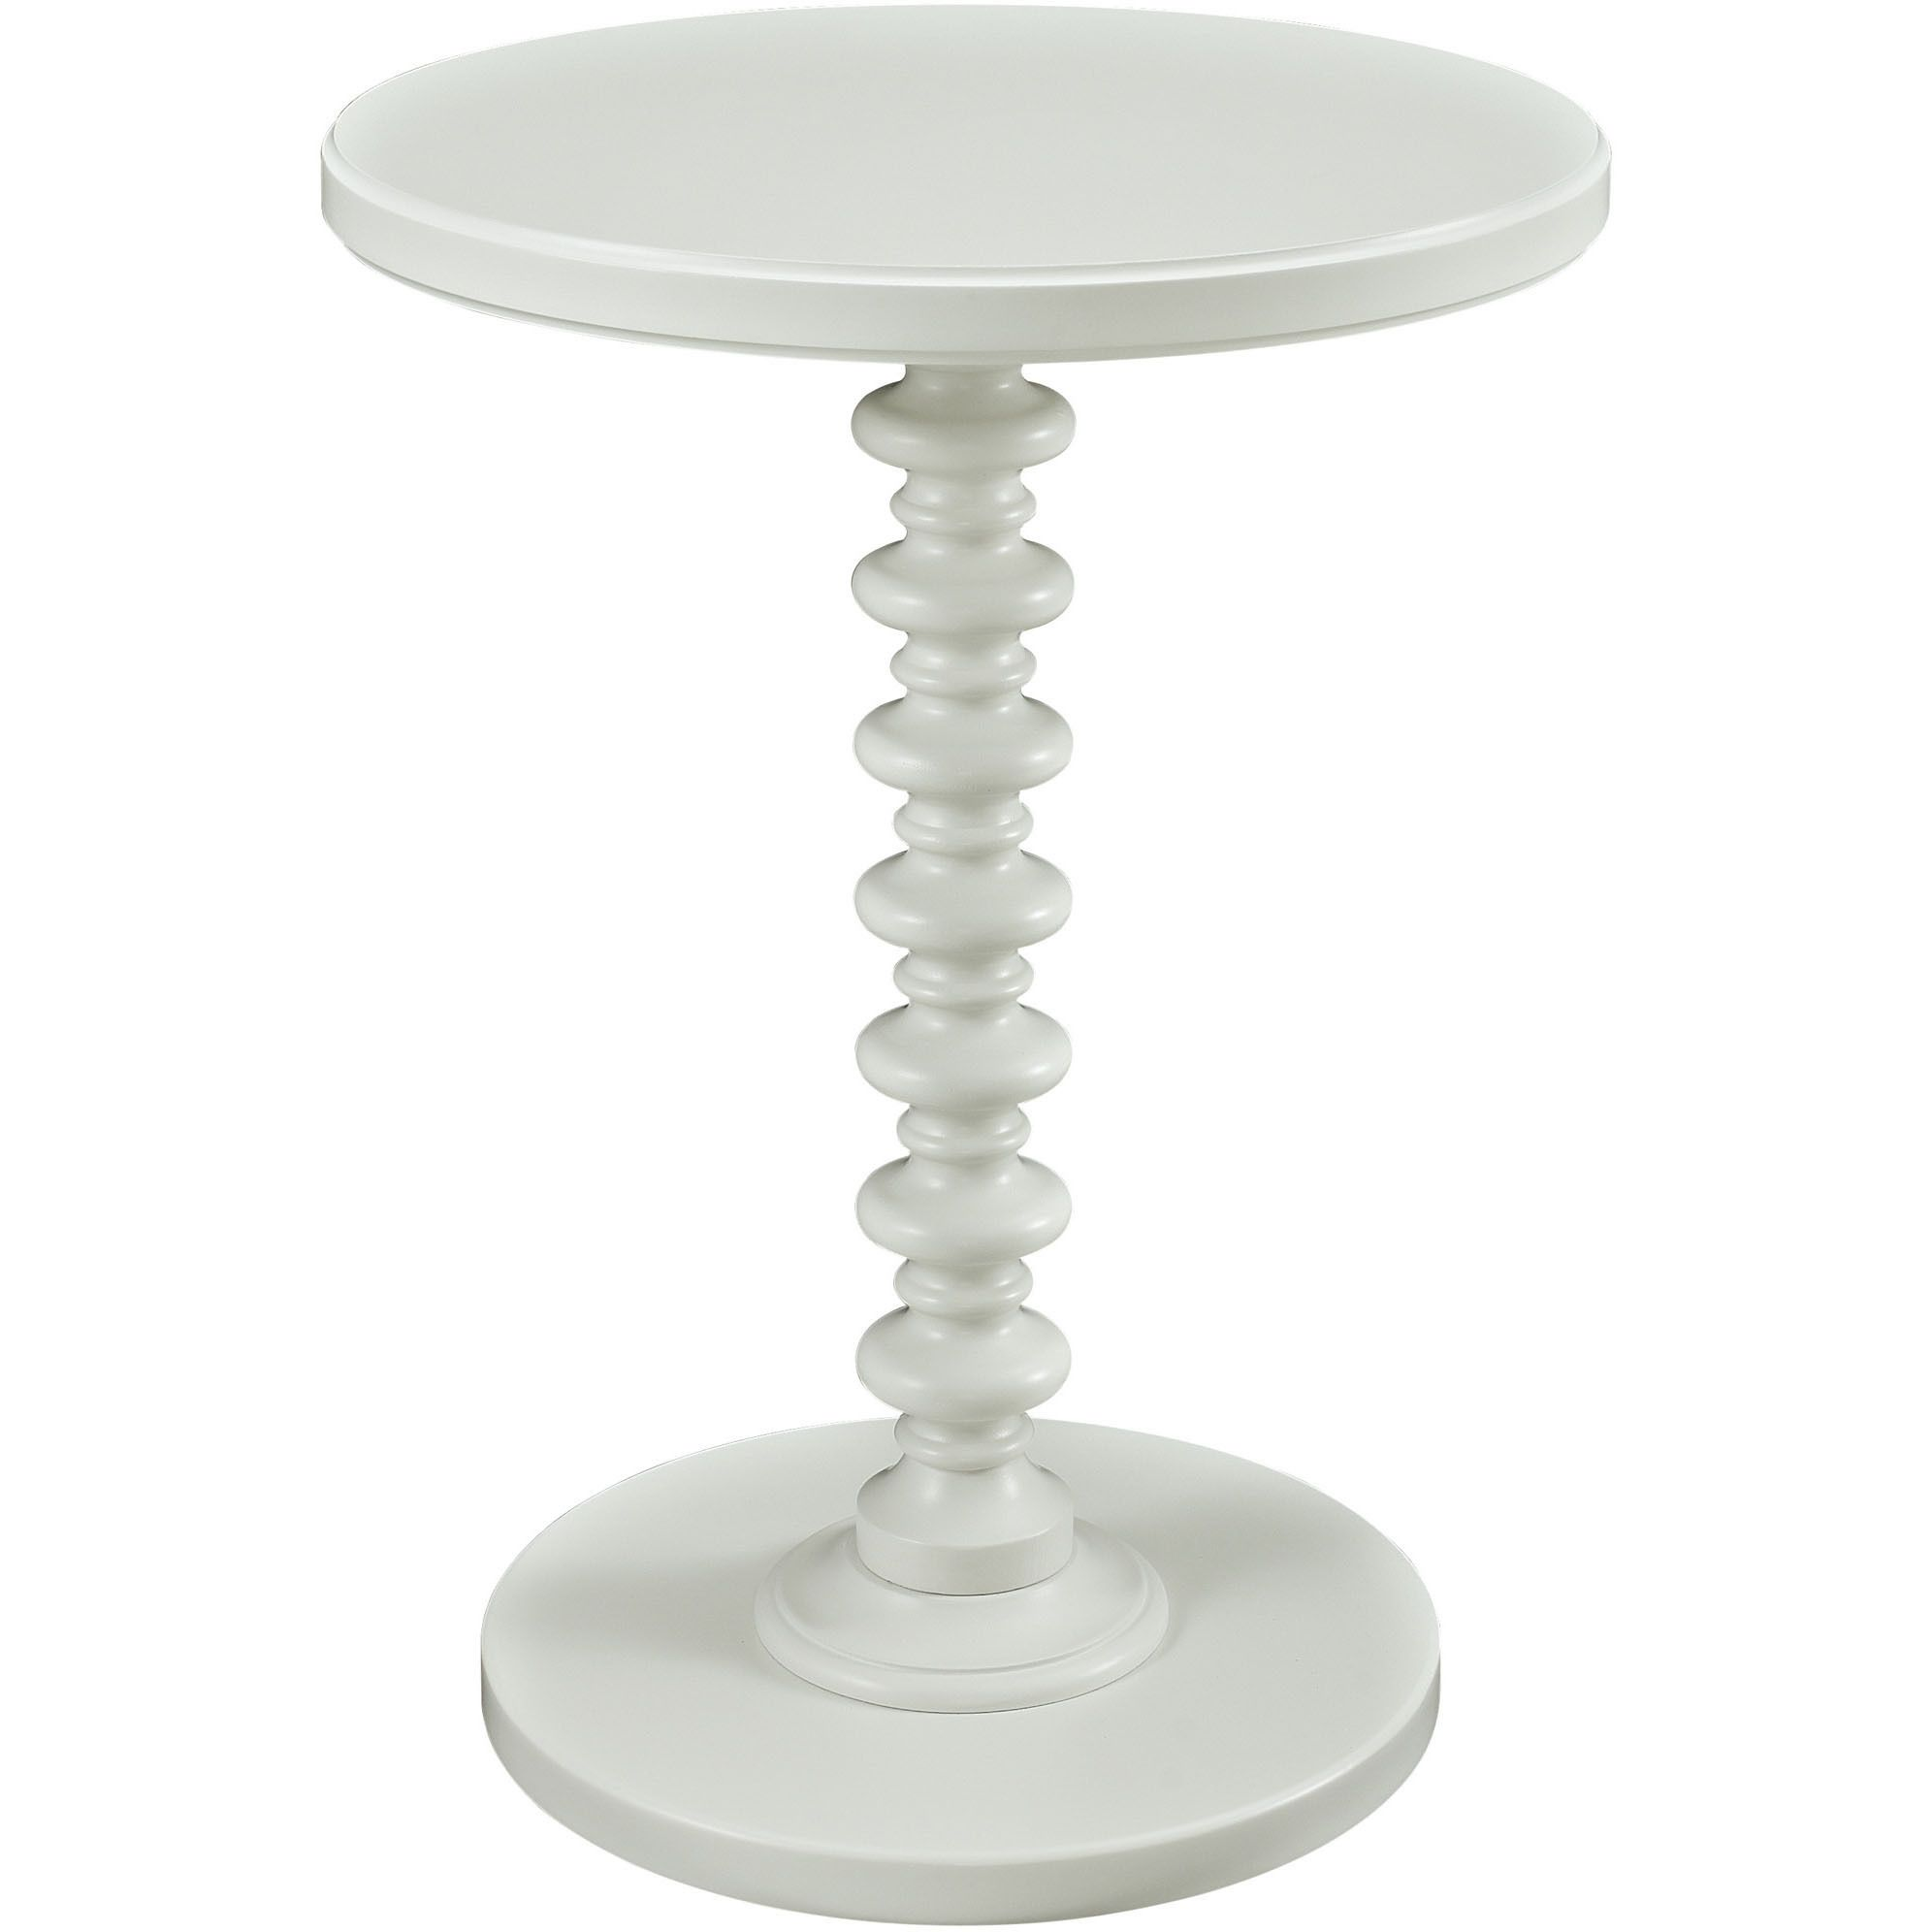 The Powell White Round Spindle Table Features A Bright Smooth Finish And Trendy